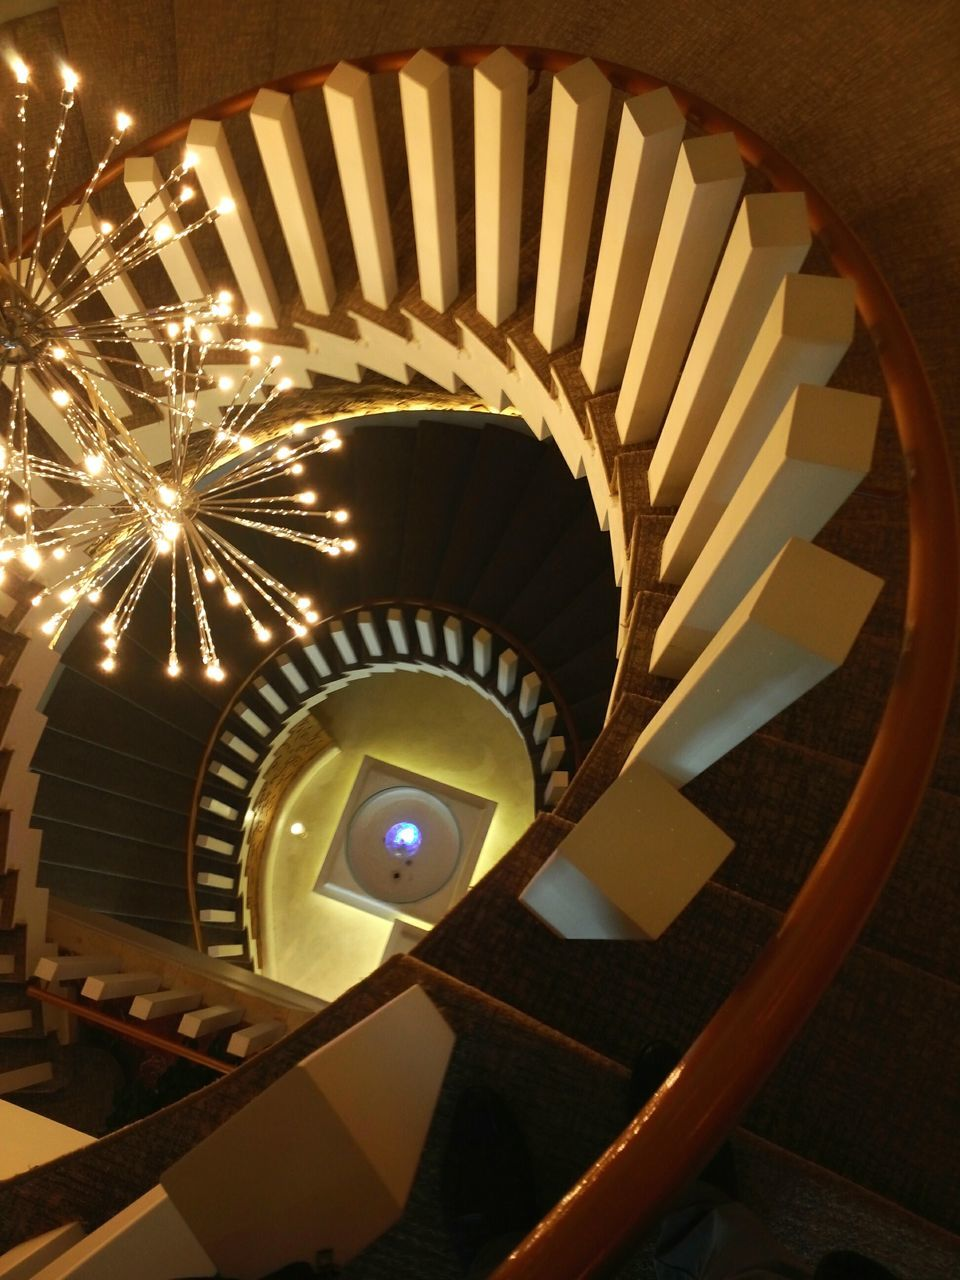 steps and staircases, staircase, railing, spiral, steps, architecture, built structure, spiral stairs, high angle view, stairs, no people, indoors, hand rail, spiral staircase, day